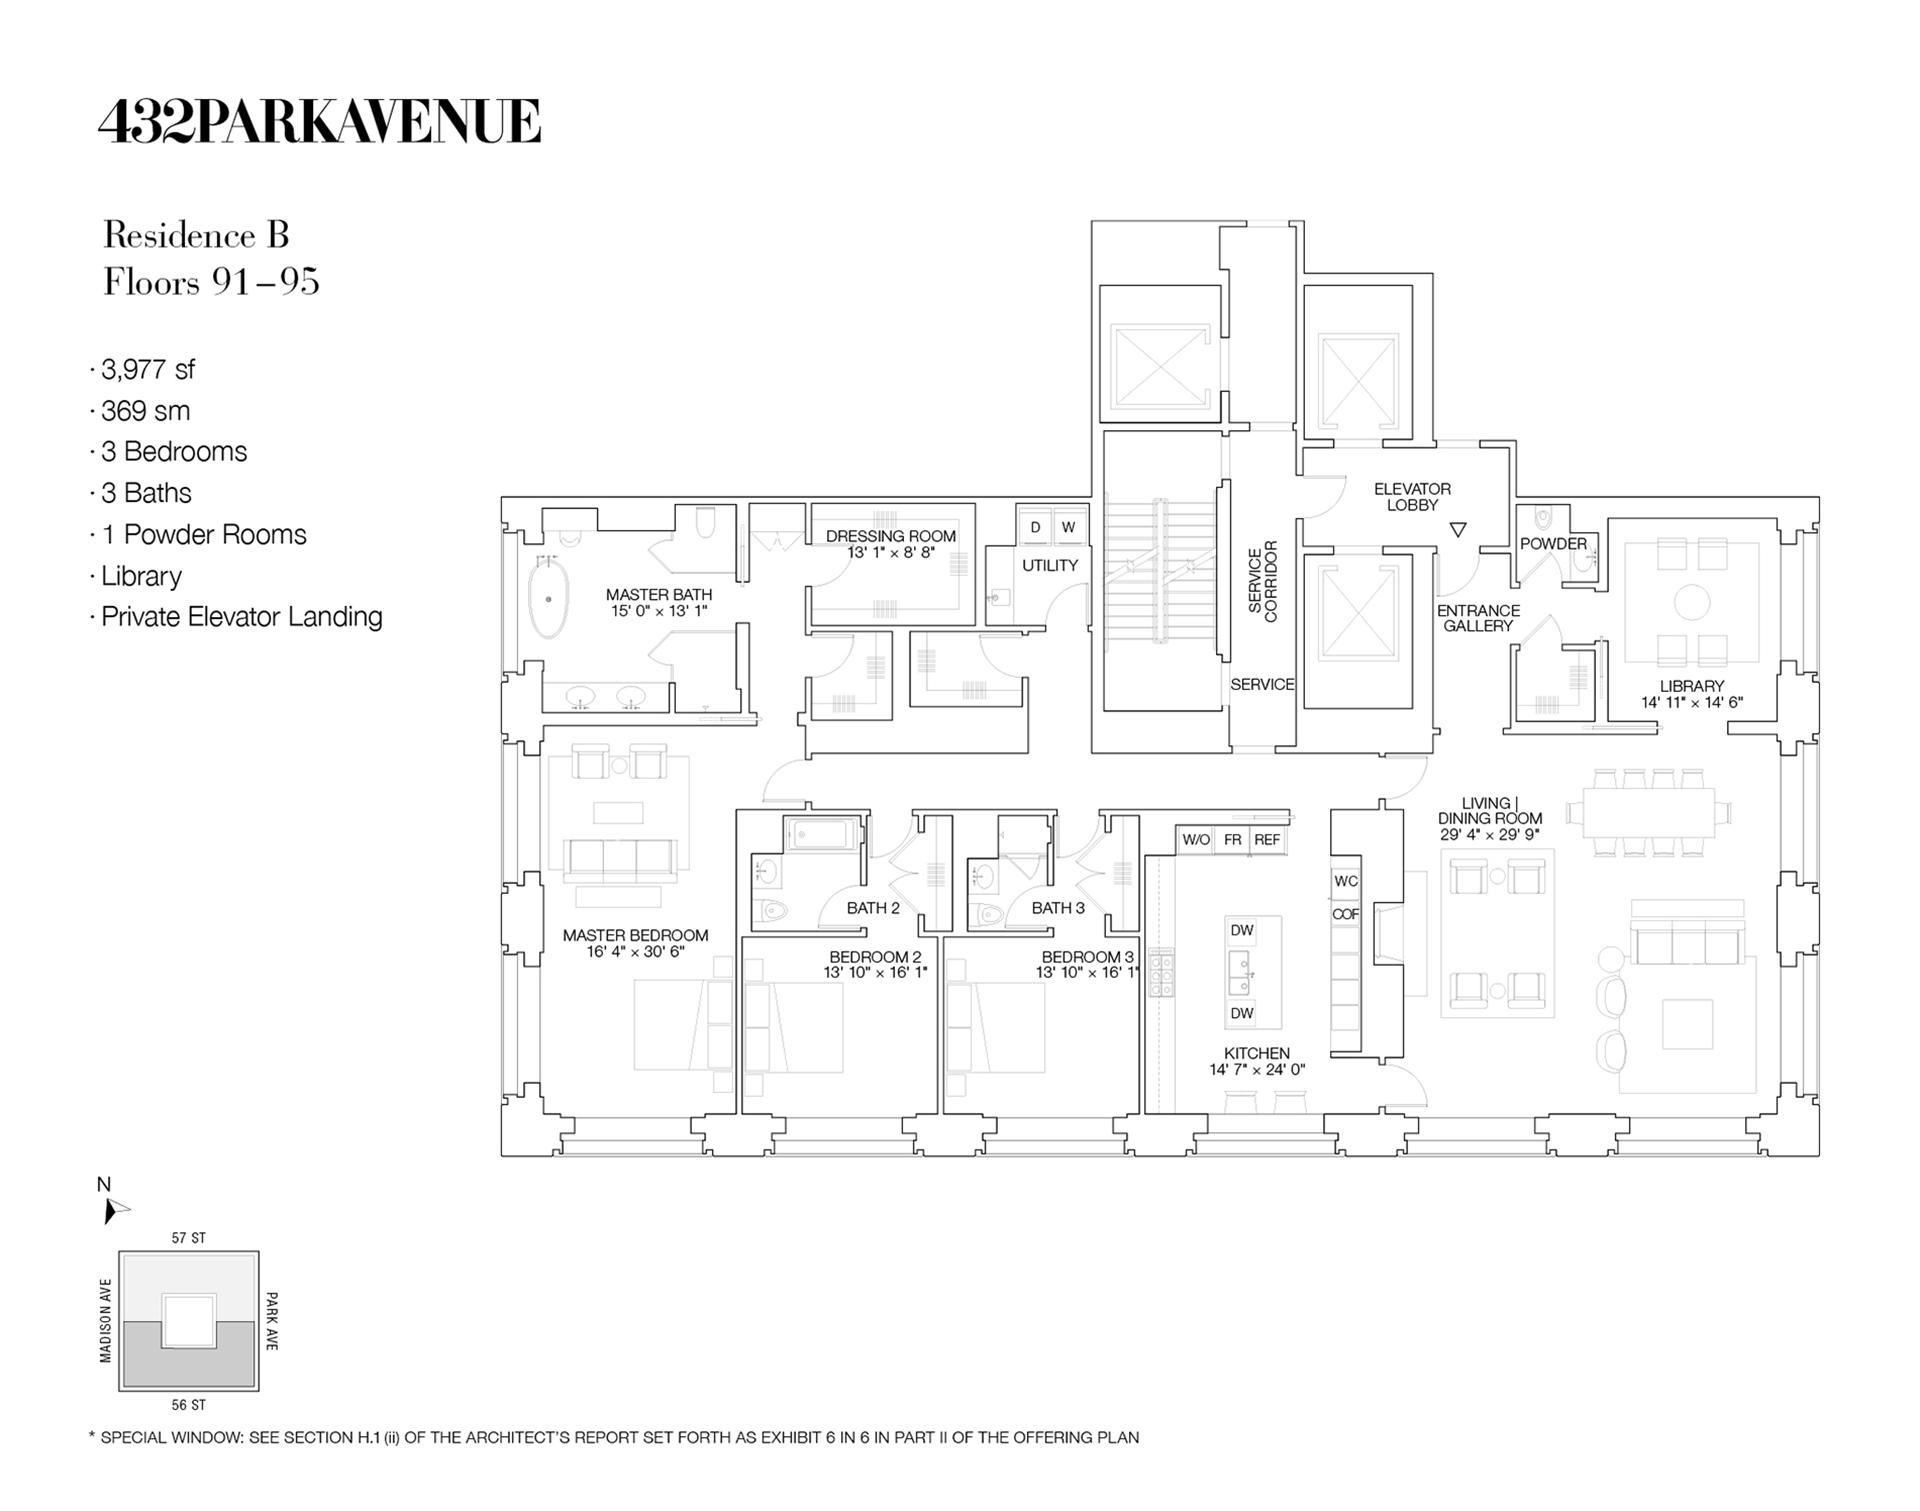 Floor plan of 432 Park Avenue, PH91B - Midtown, New York